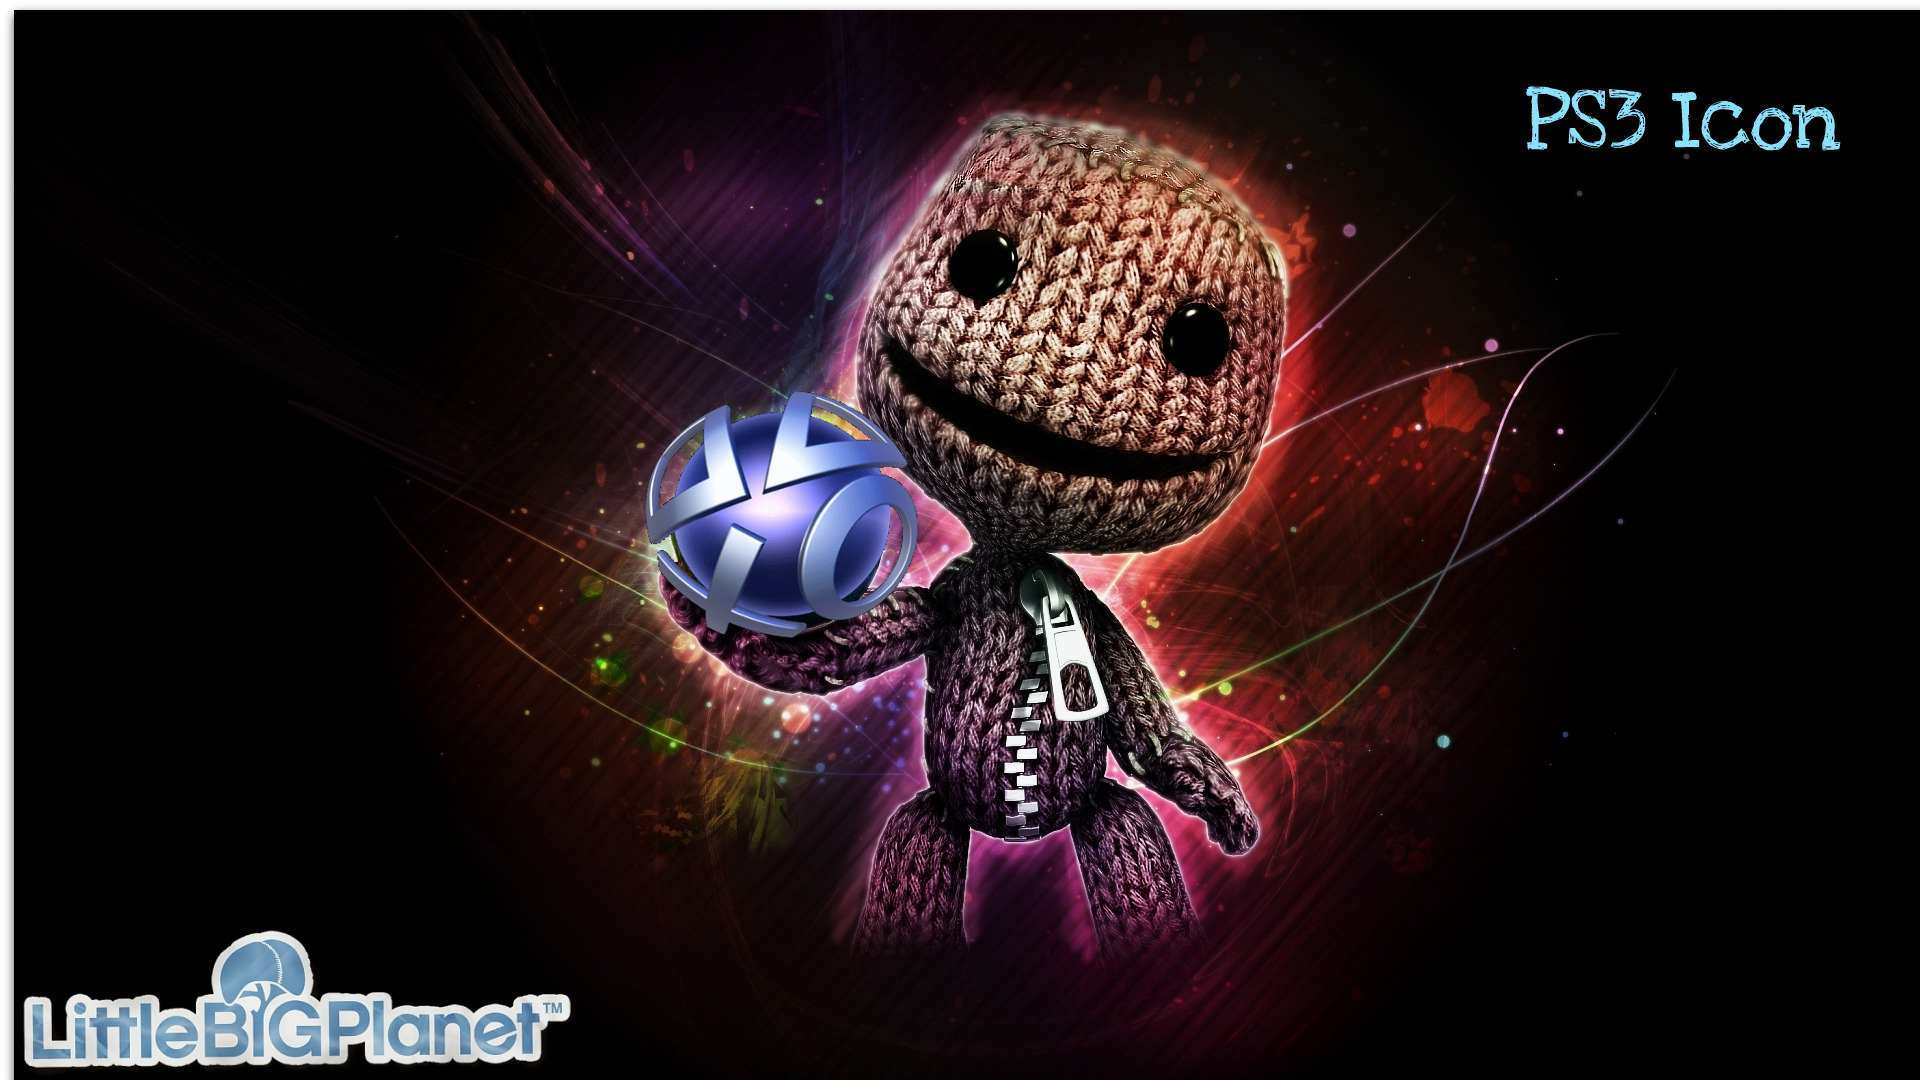 24 Cool Widescreen Wallpapers of Best Selling PS3 Games Blaberize 1920x1080